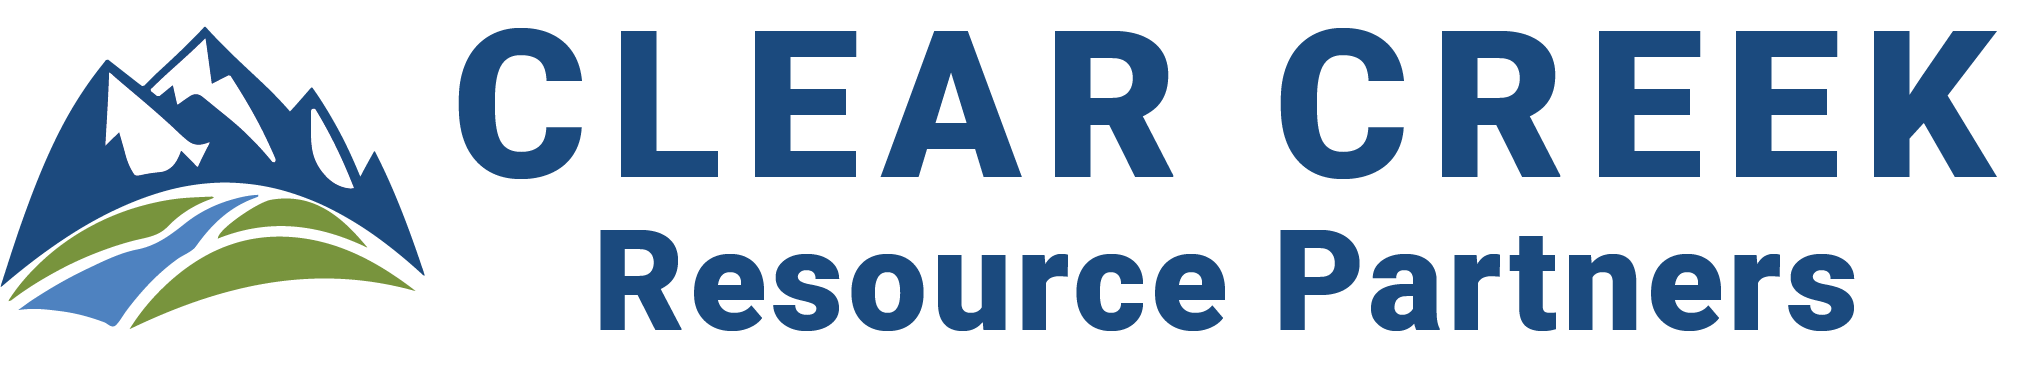 Clear Creek Resource Partners uses our Inspections Software.